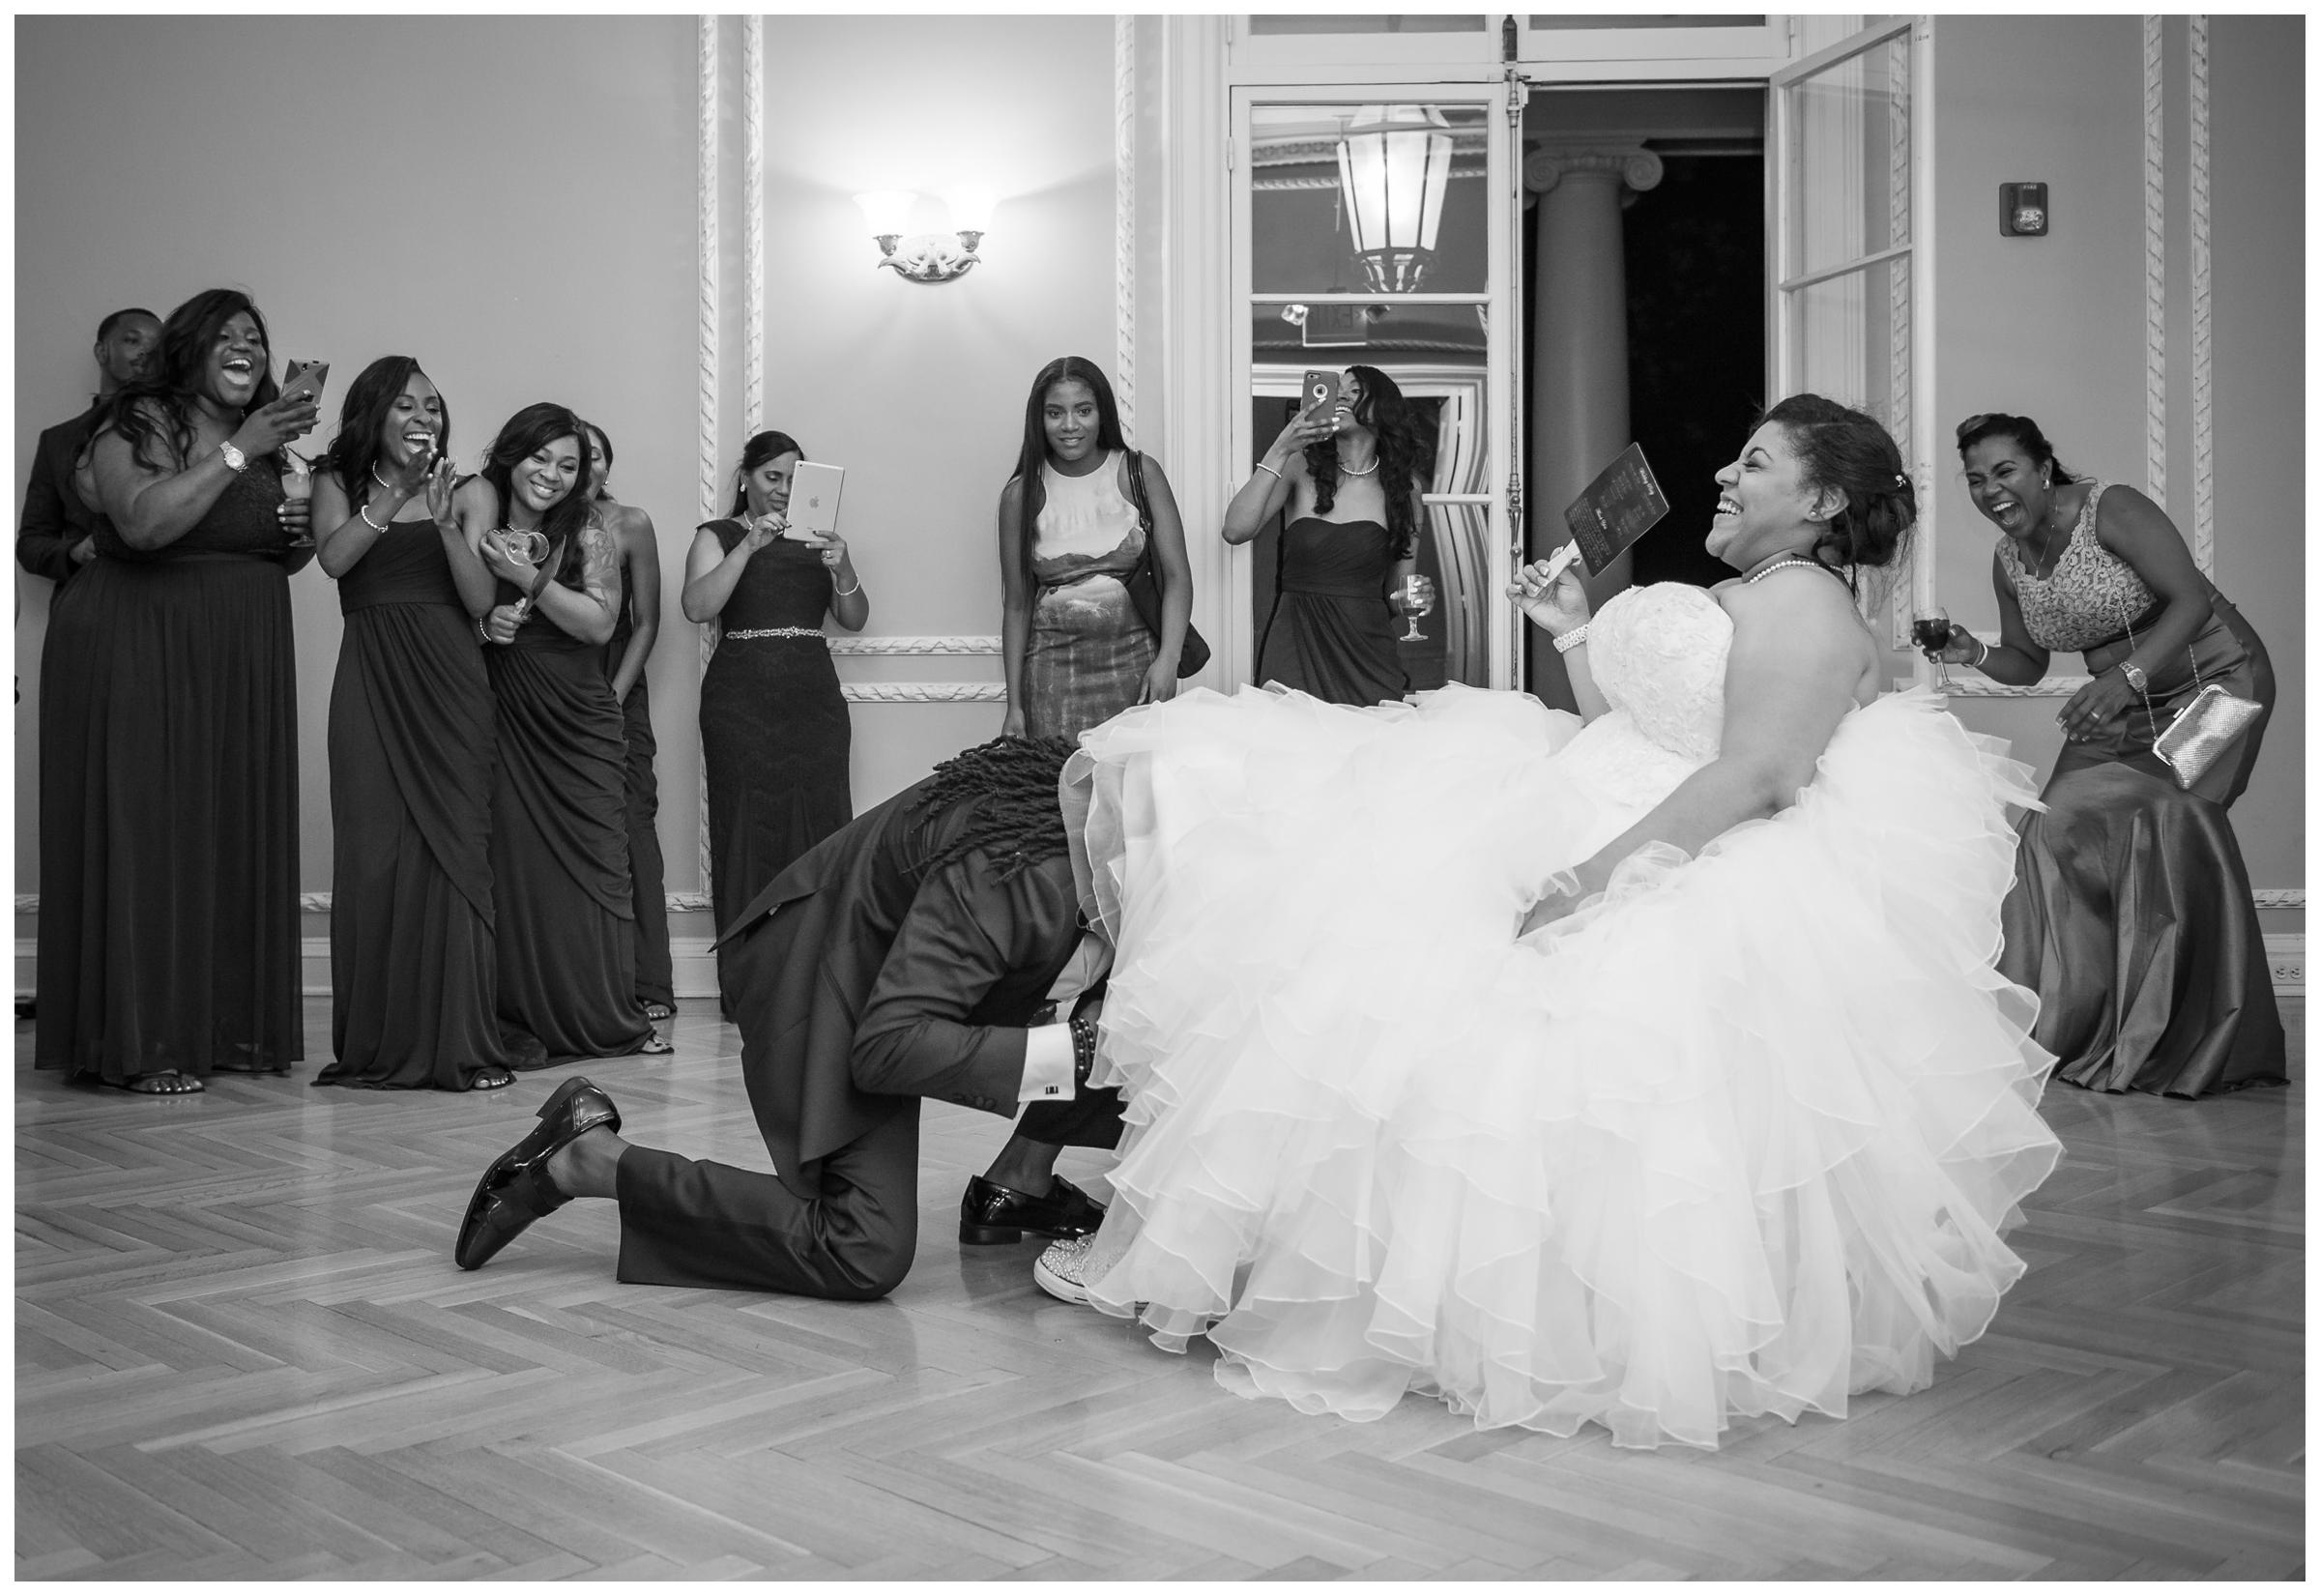 groom retrieving garter while guests laugh